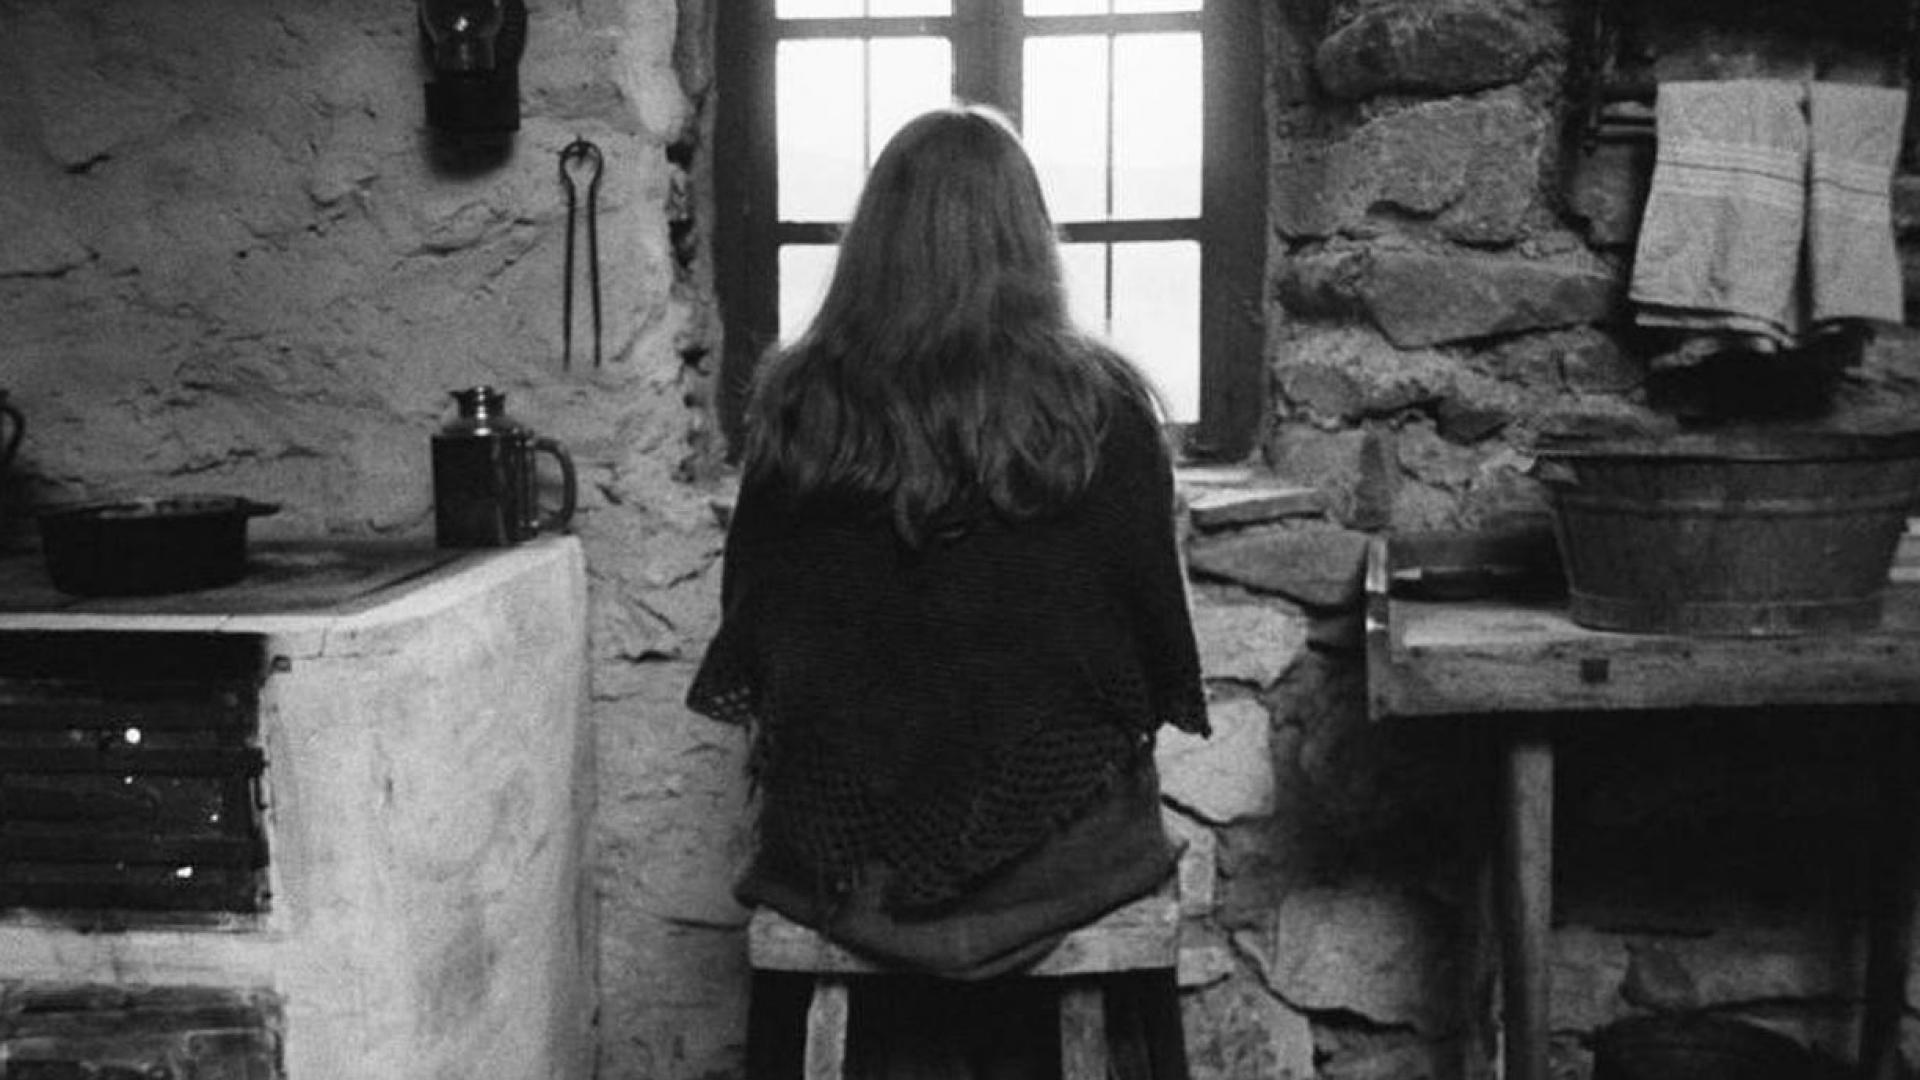 Indoors kitchen grayscale windows the turin horse wallpapers